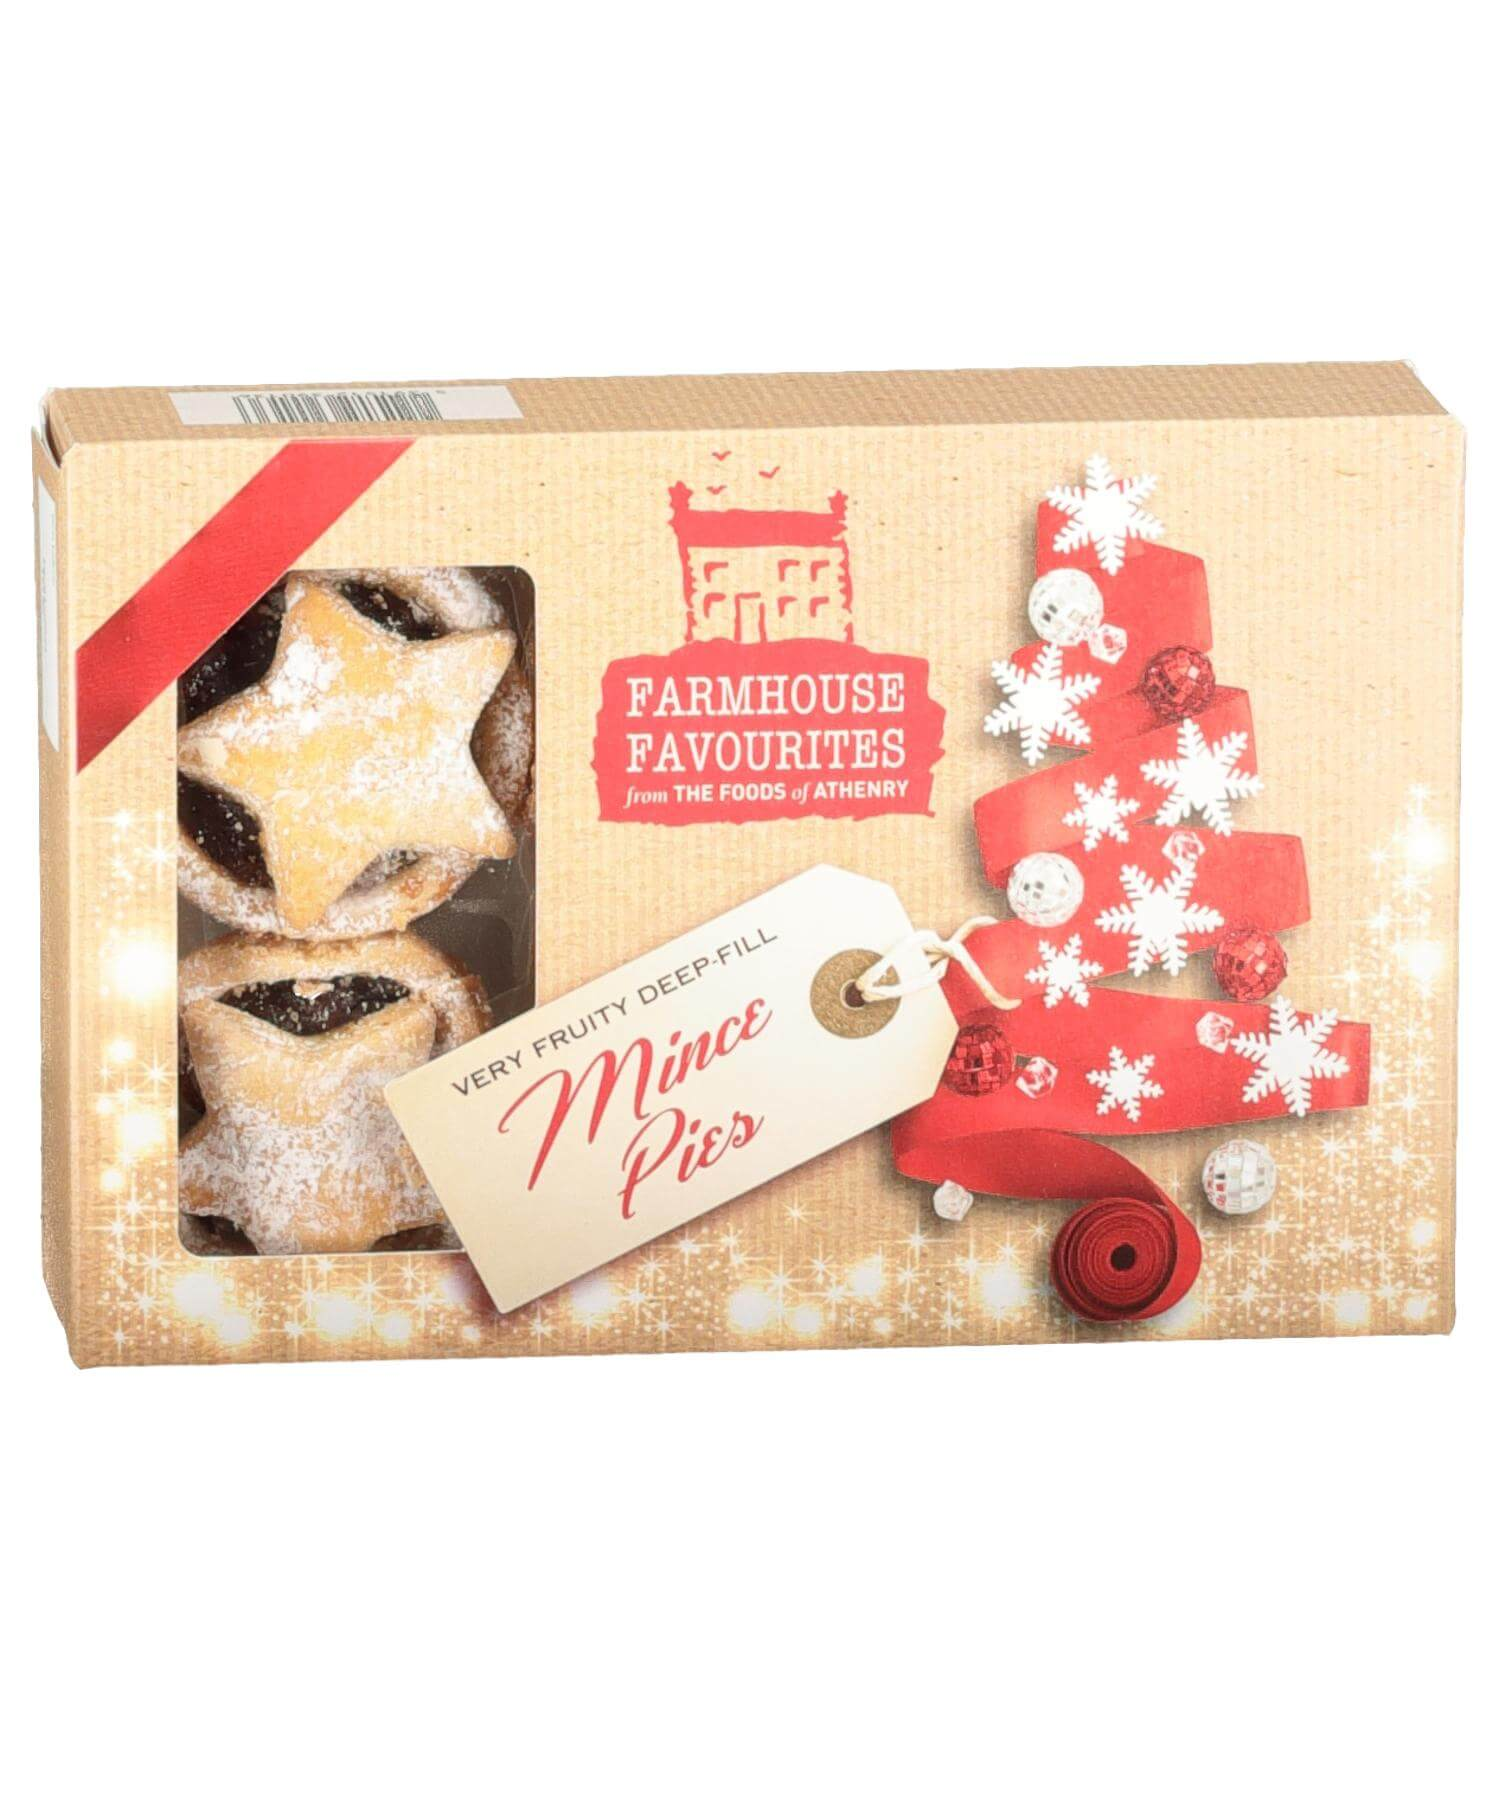 Luxury Mince Pies - [Foods of Athenry] - Food Gifts - Irish Gifts